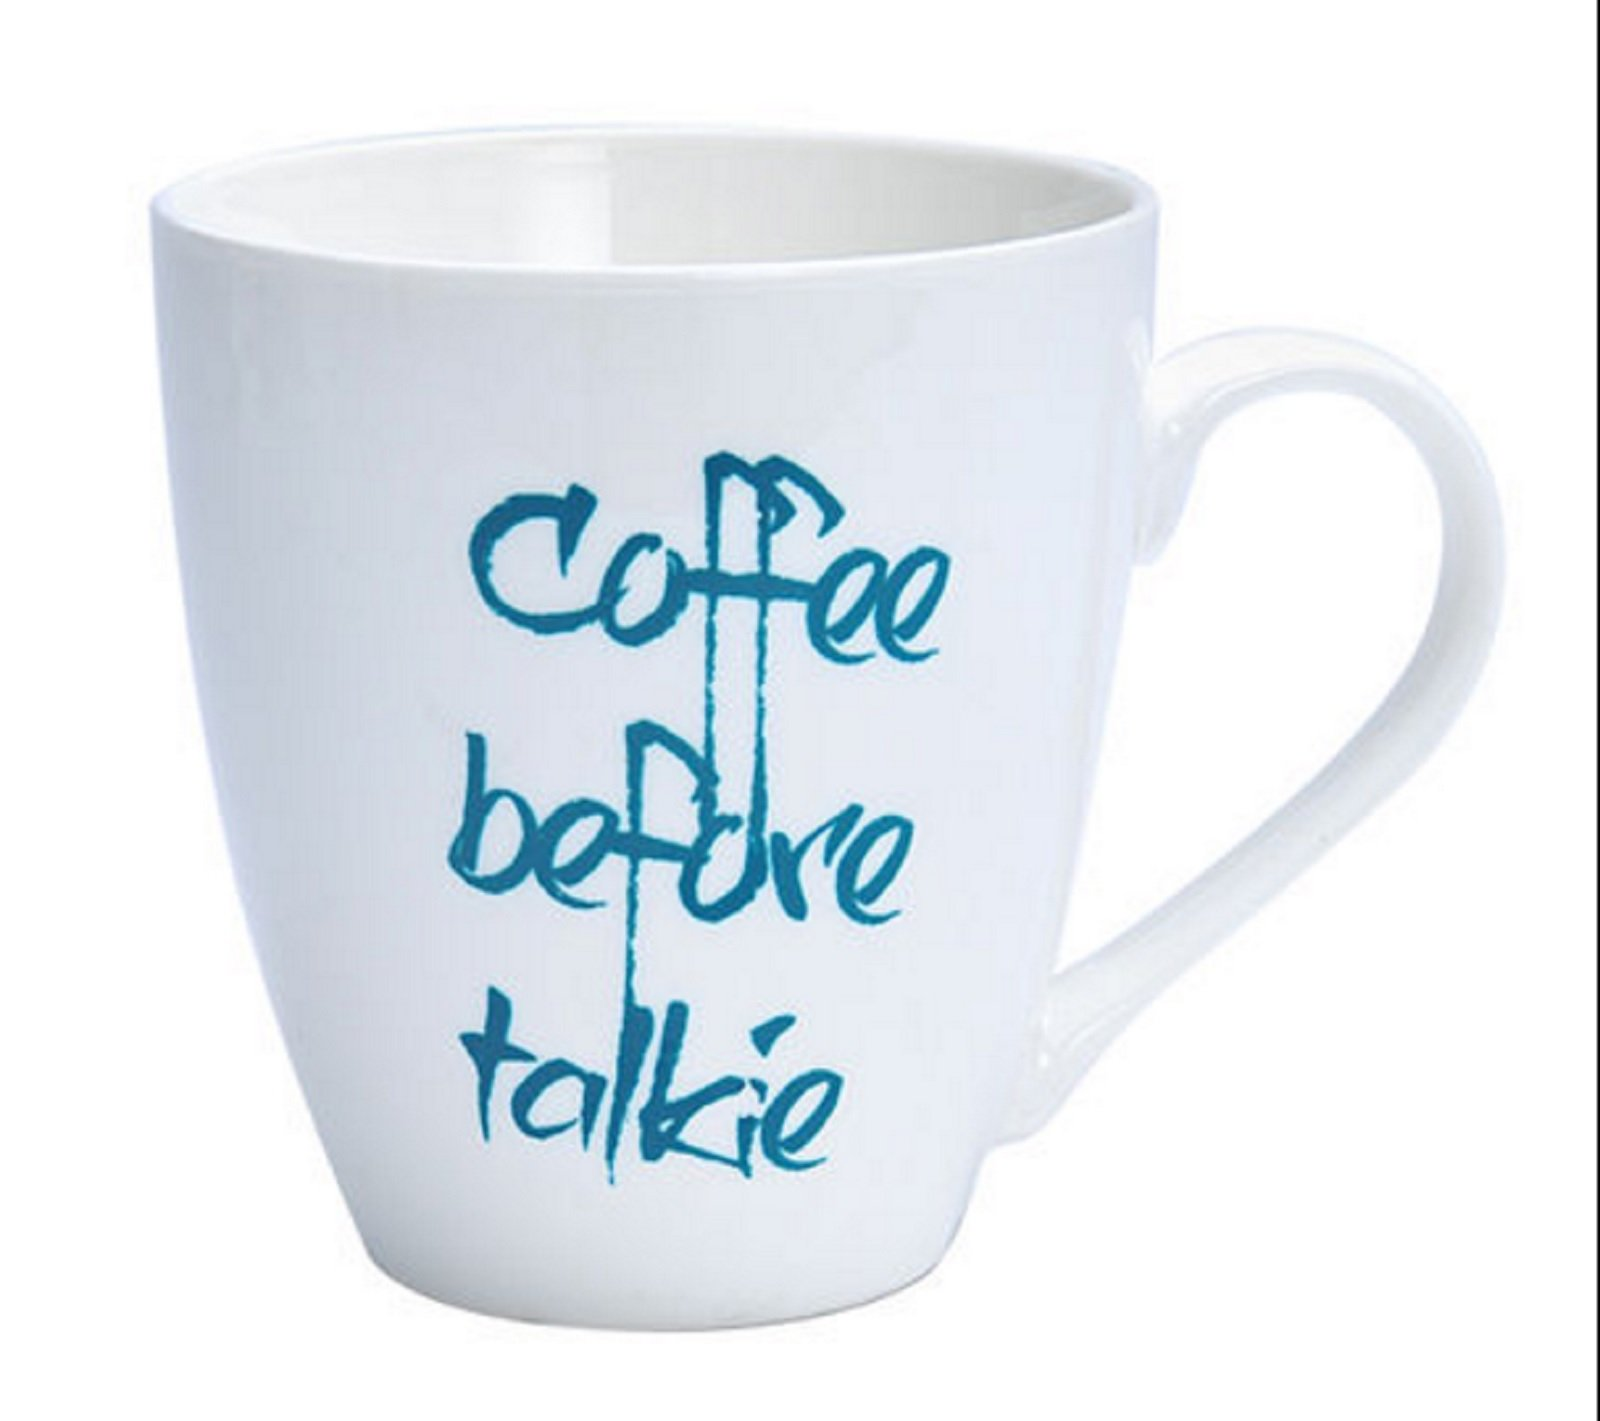 Pfaltzgraff Everyday Coffee Before Talkie Large 18 Ounce Coffee Mug - Blue